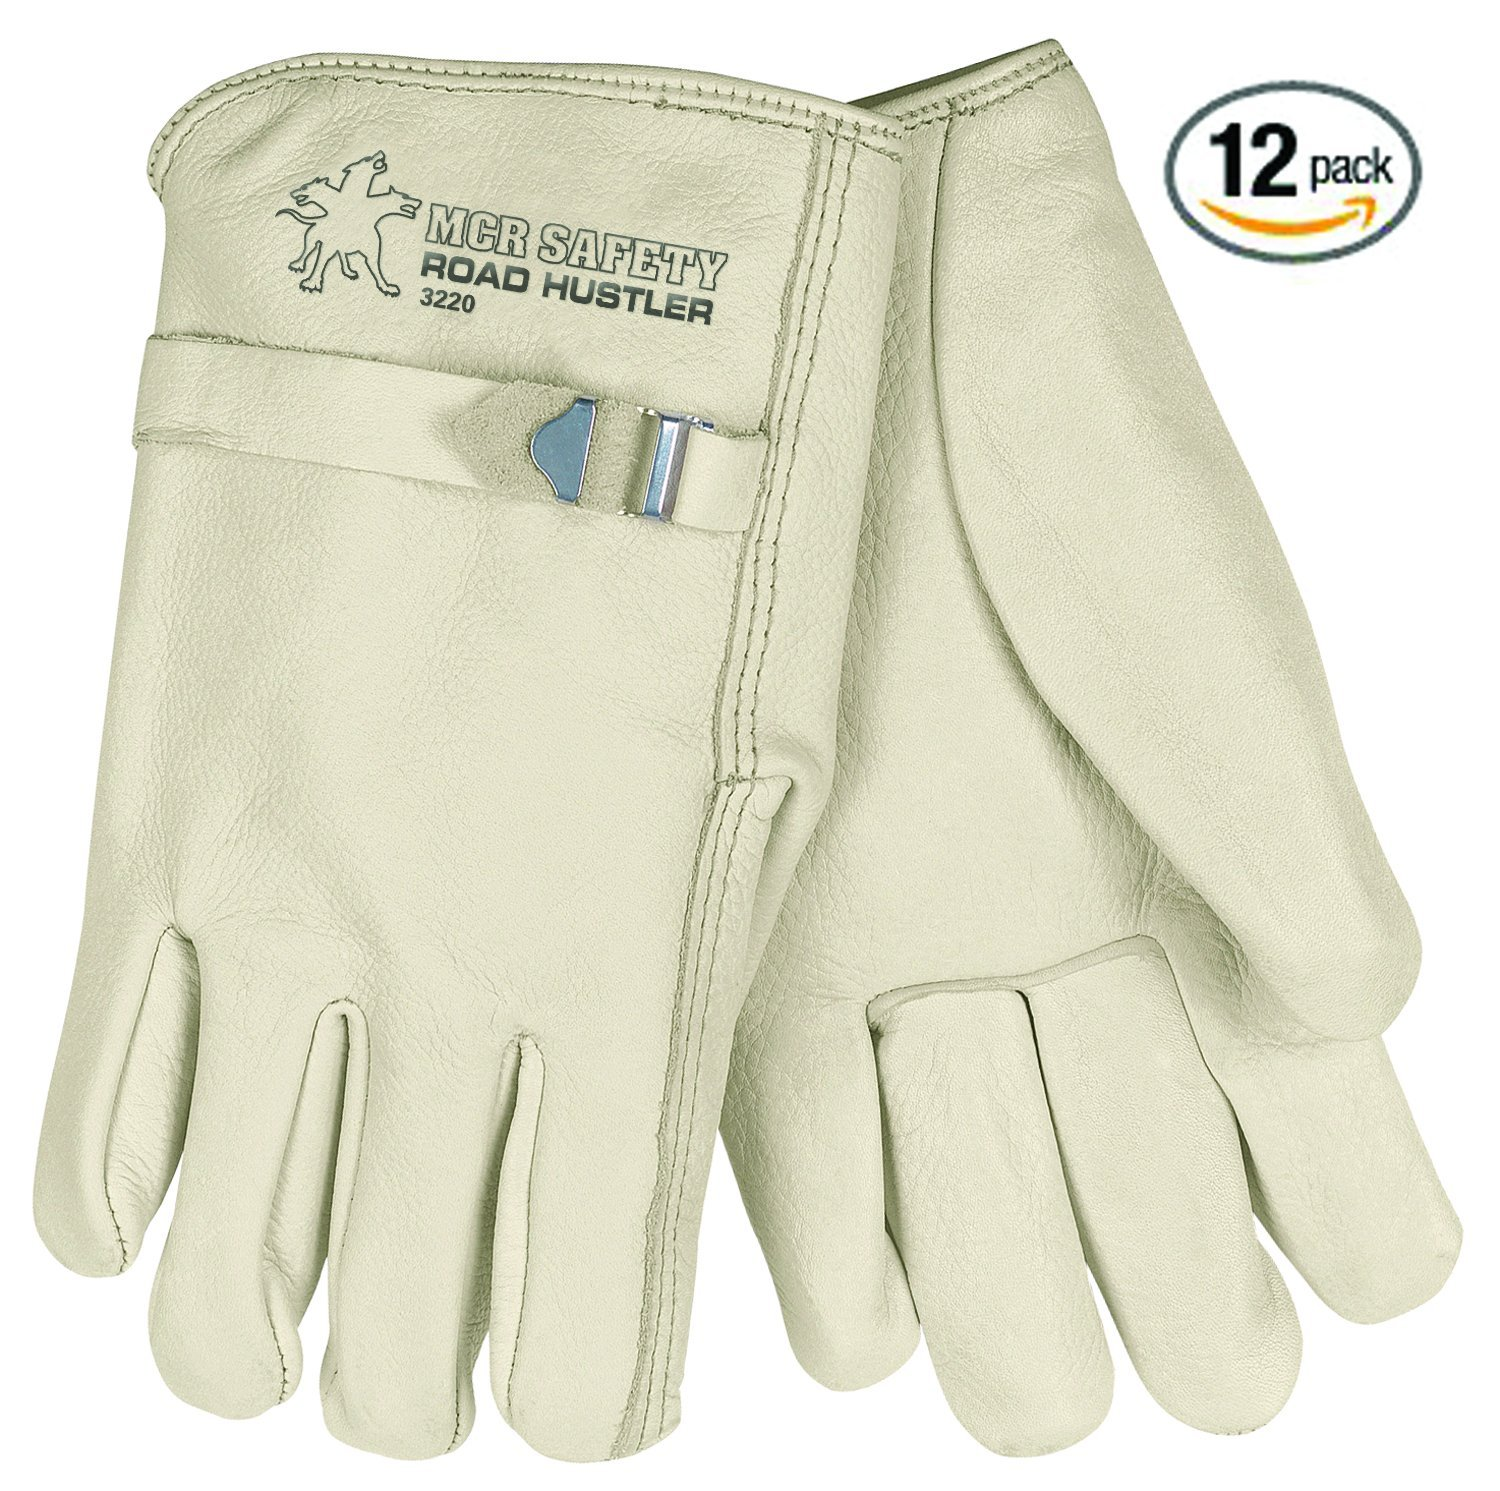 MCR Safety 3220XL Road Hustler Premium Grade Unlined Cow Grain Leather Driver Gloves with Pull Strap, X-Large, Cream, 12-Pack